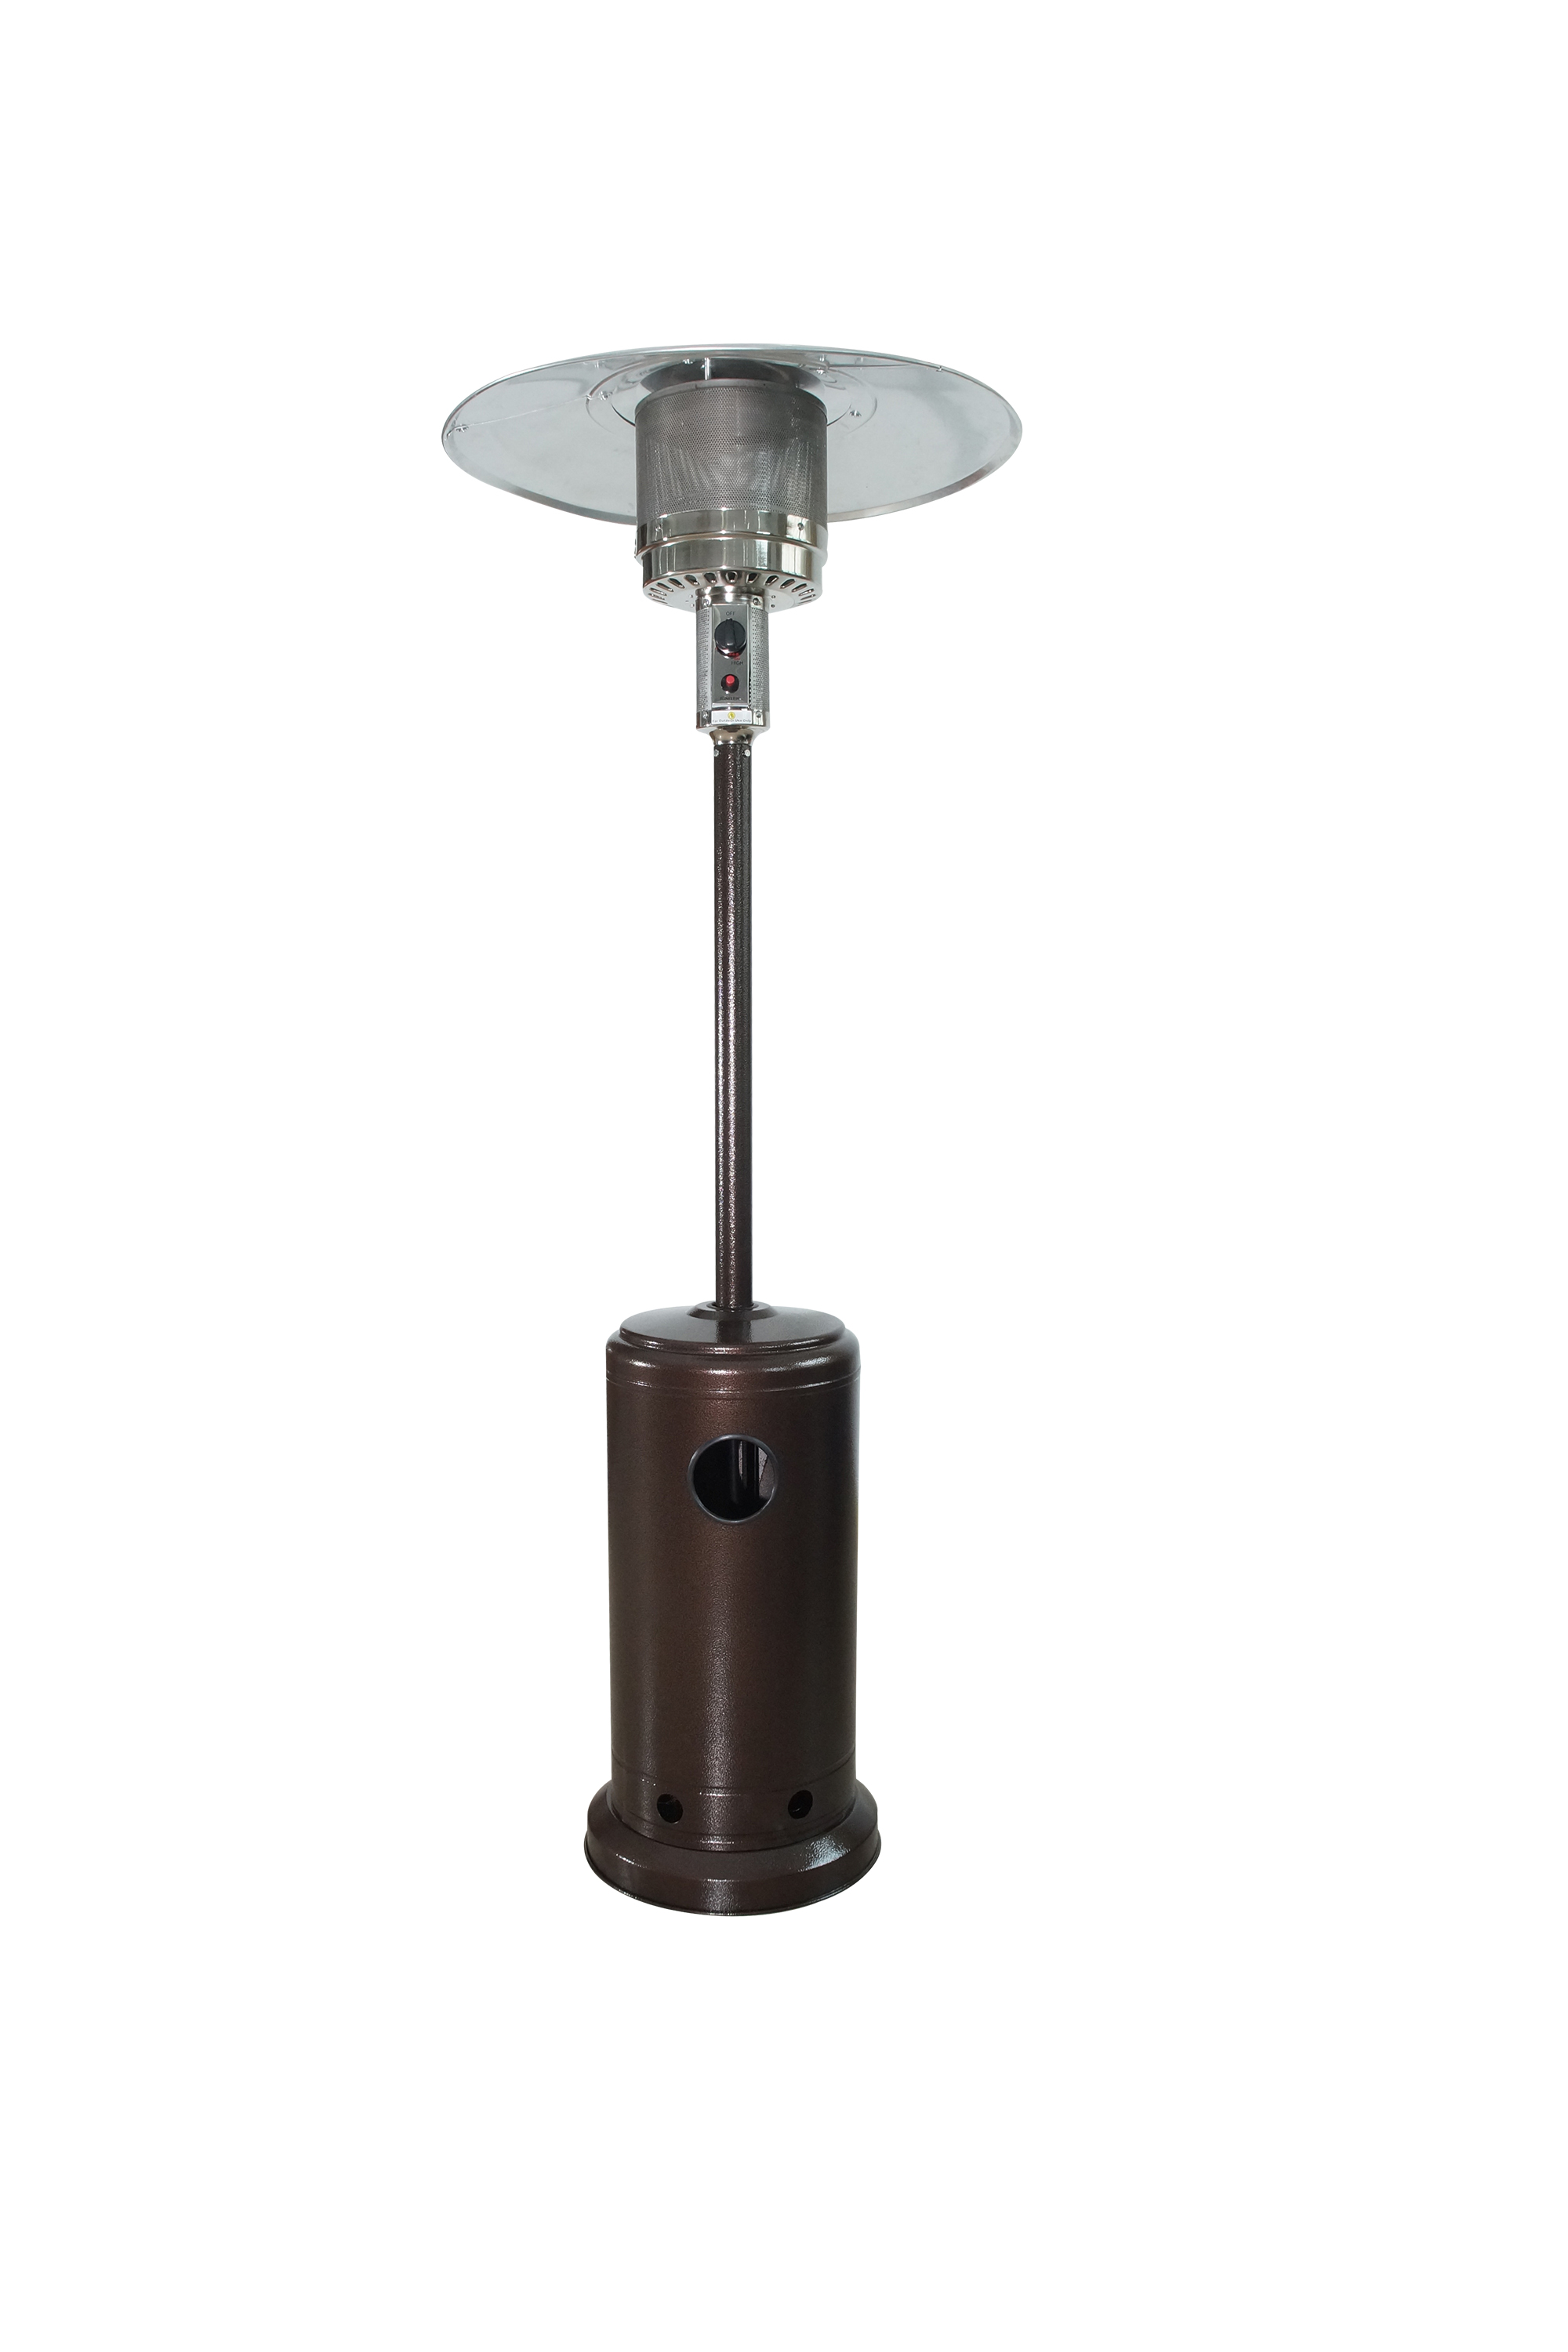 Baner Garden ASD AG Outdoor Propane Patio Heater With Cover Commercial Tall  Hammered Finish